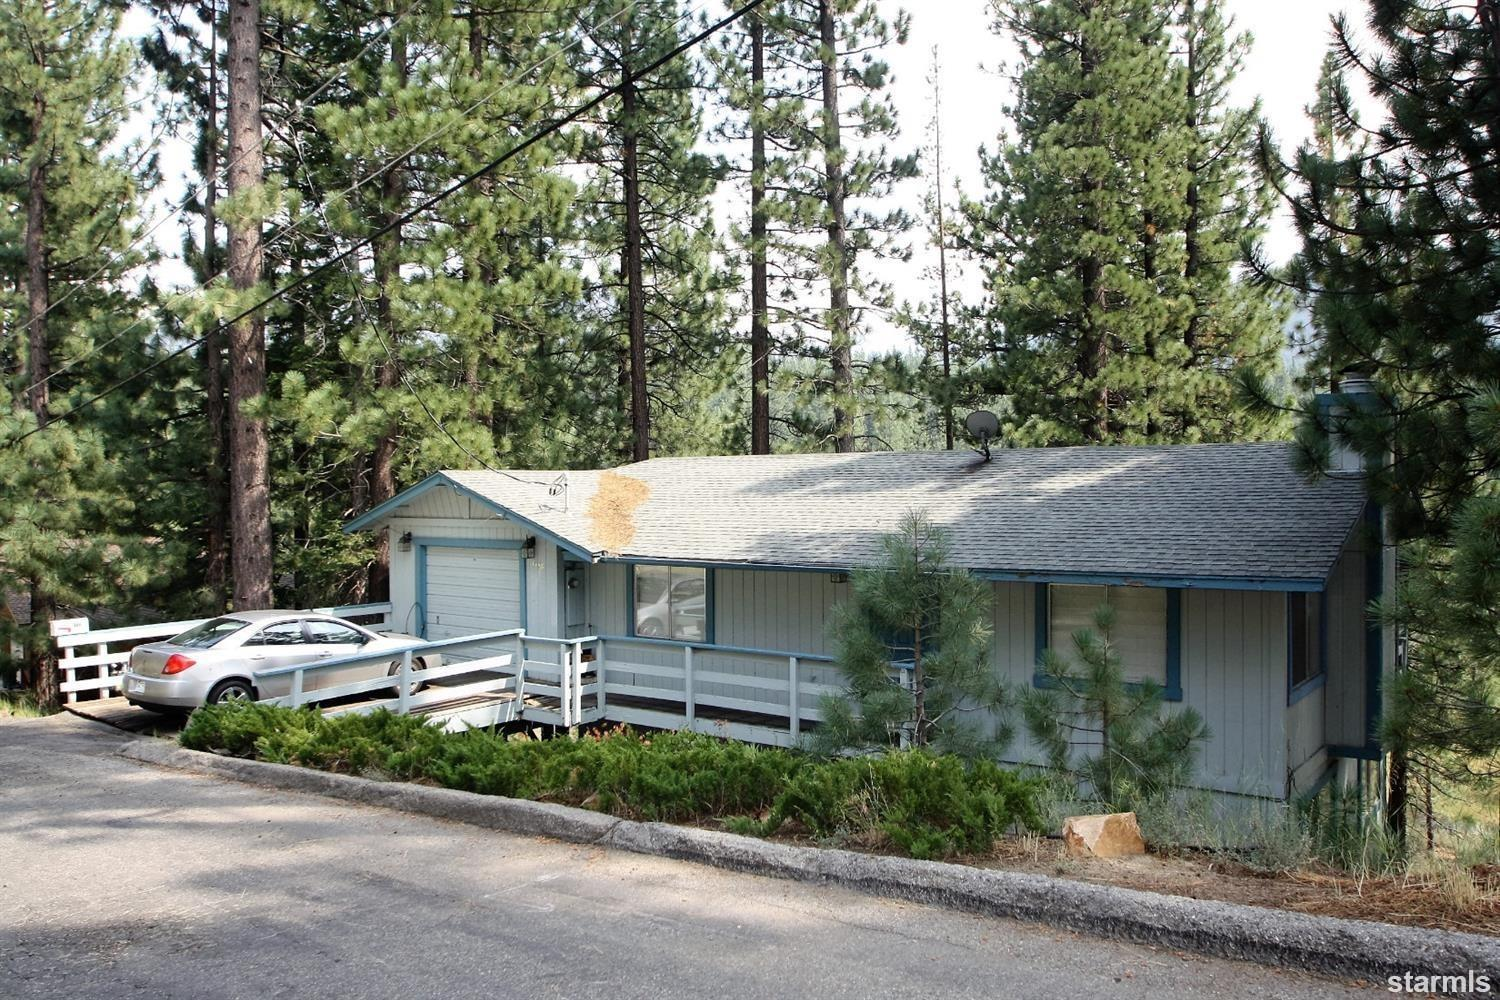 Southern Pines Drive, SOUTH LAKE TAHOE, CA 96150